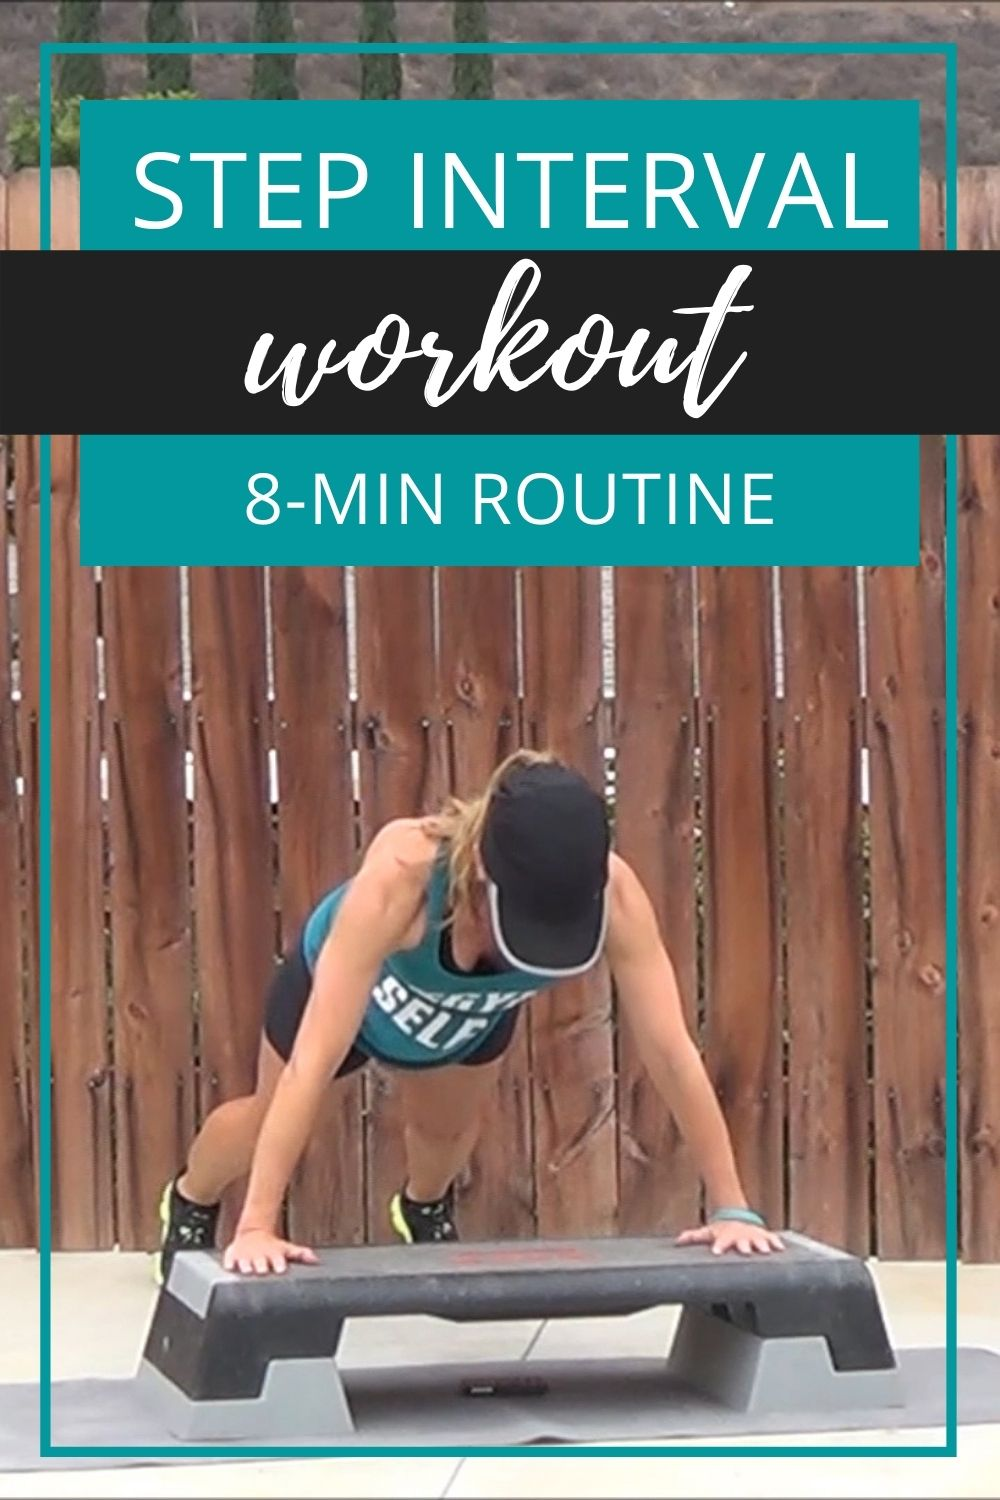 step interval workout 8-min routine